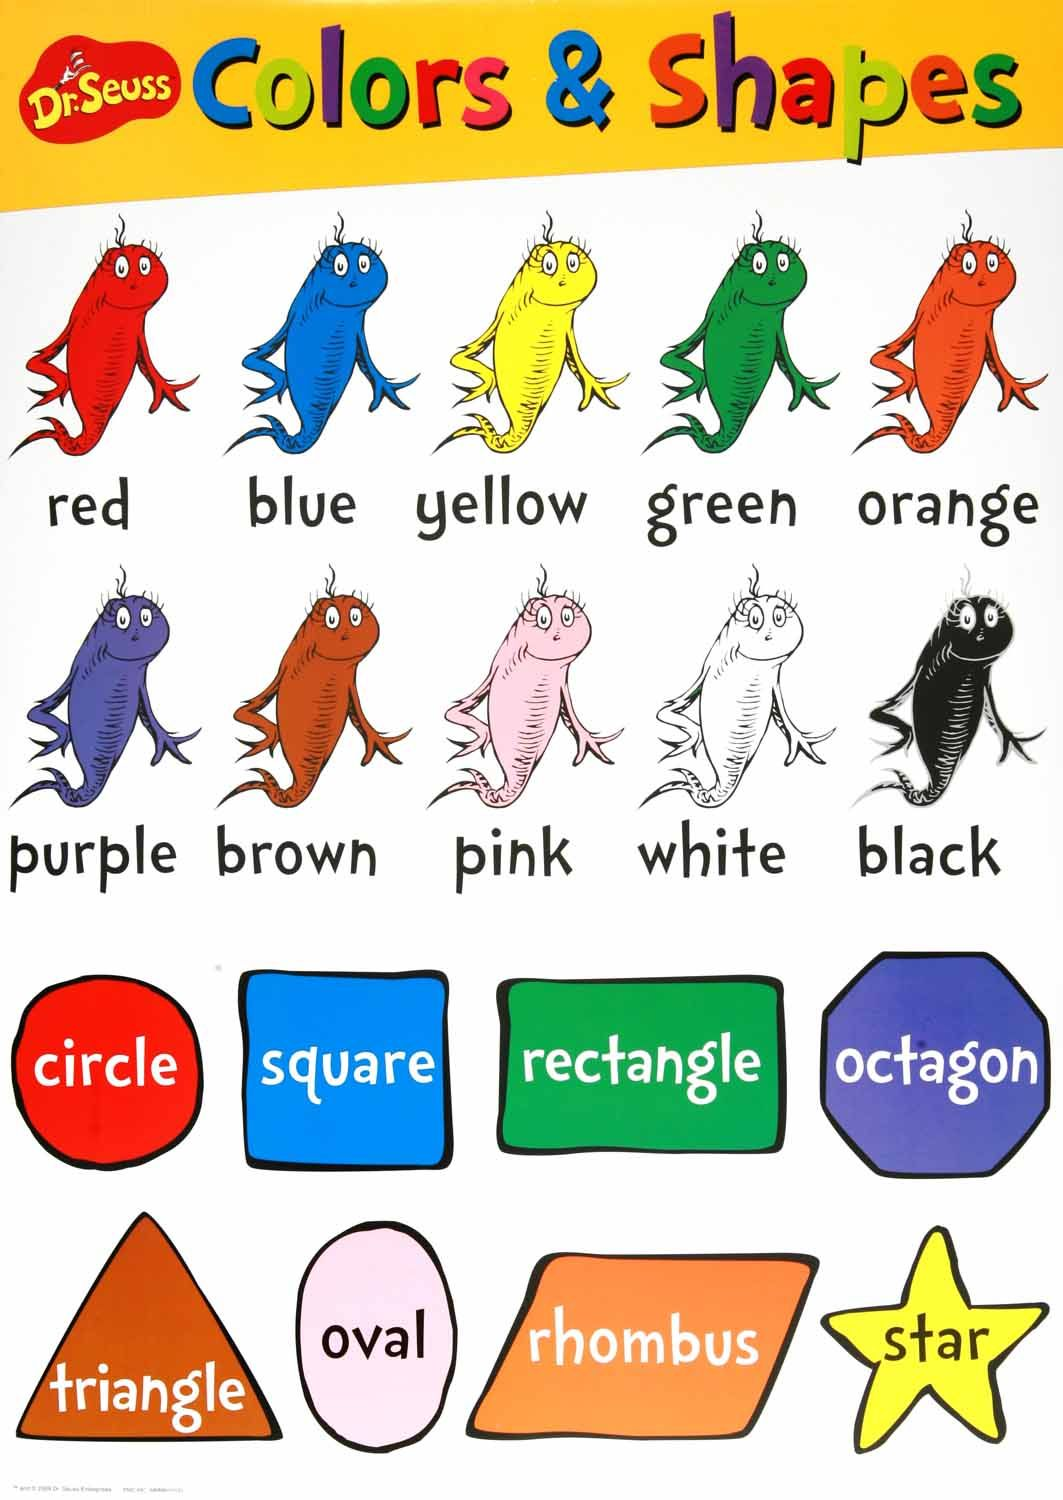 Dr seuss beginning concepts bulletin board set color shapes colors shapes chart included in the dr seuss beginning concept bulletin boards set geenschuldenfo Images